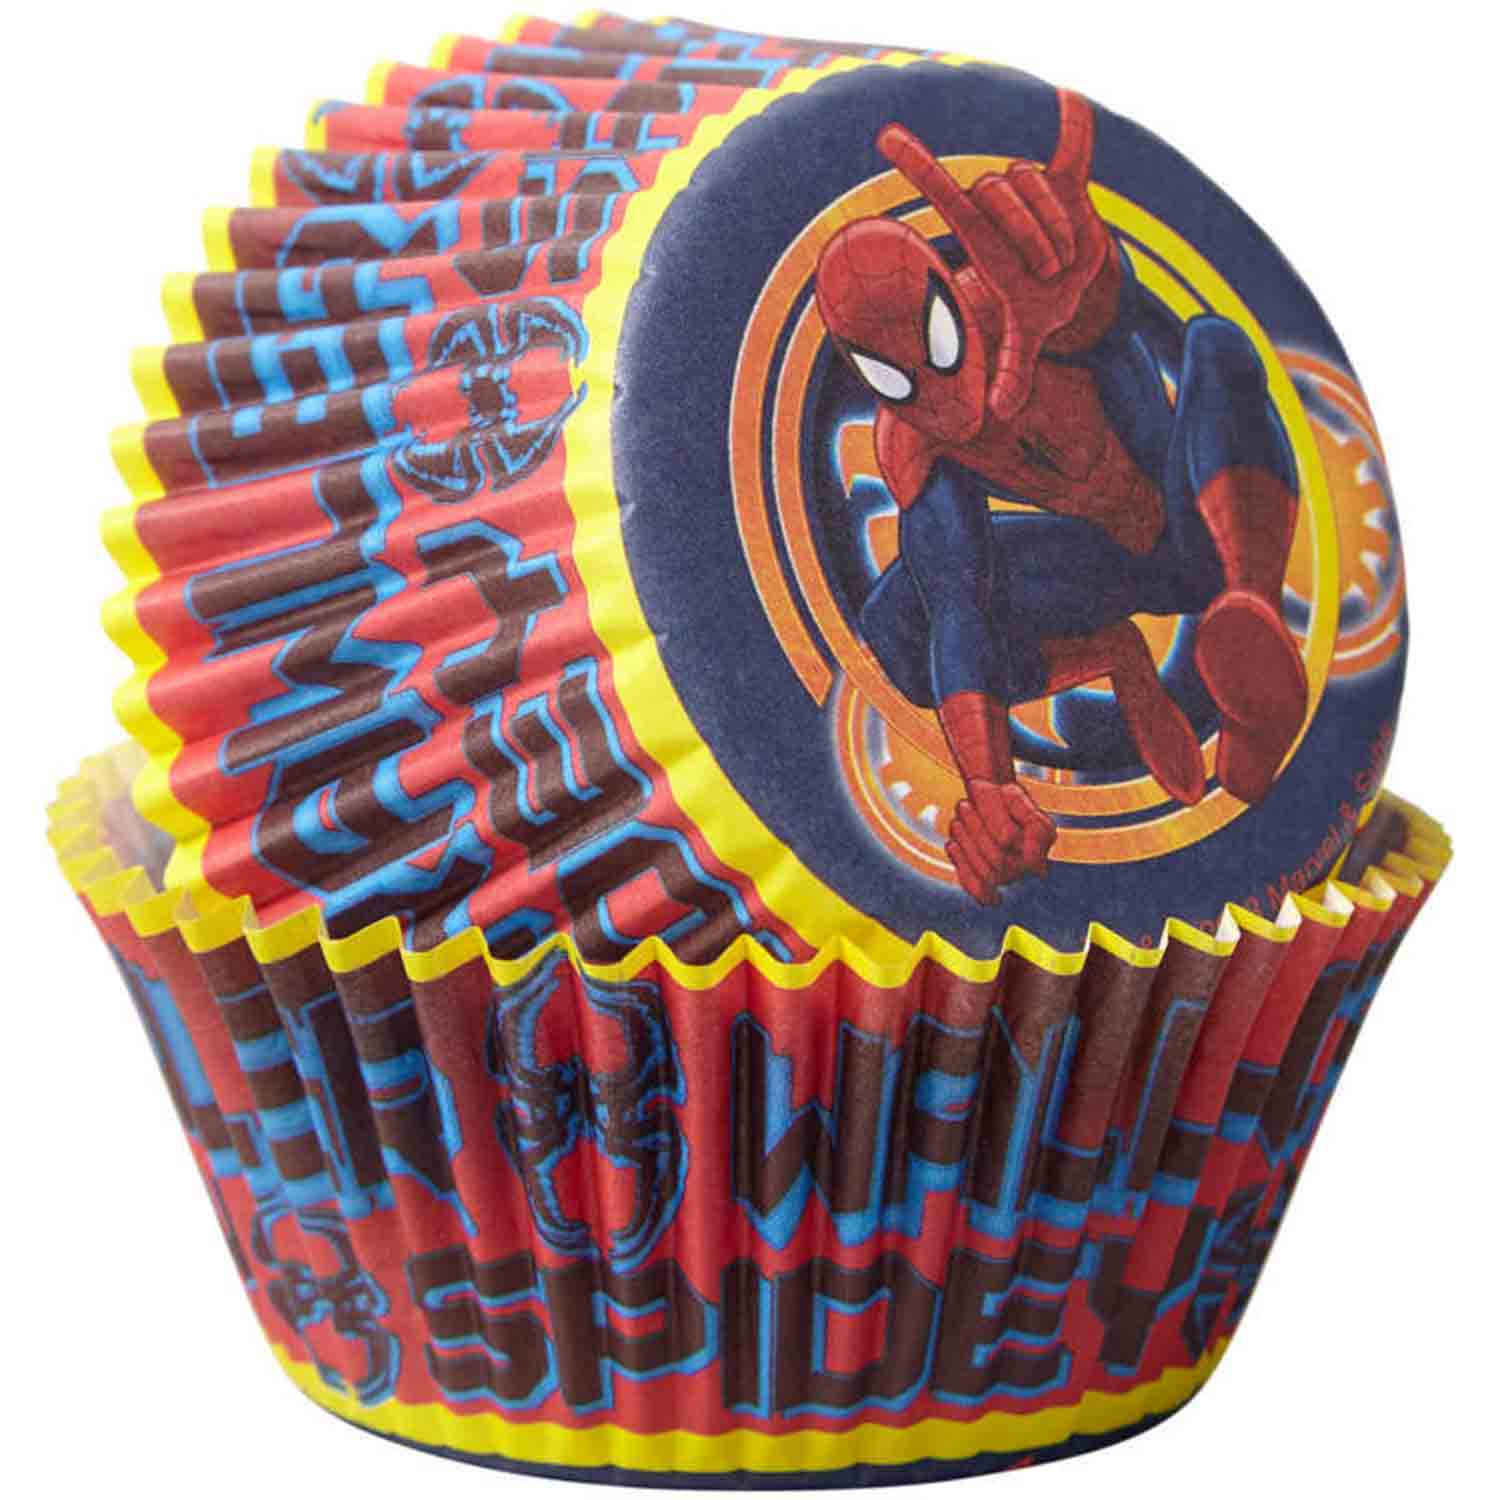 Spiderman Standard Baking Cups